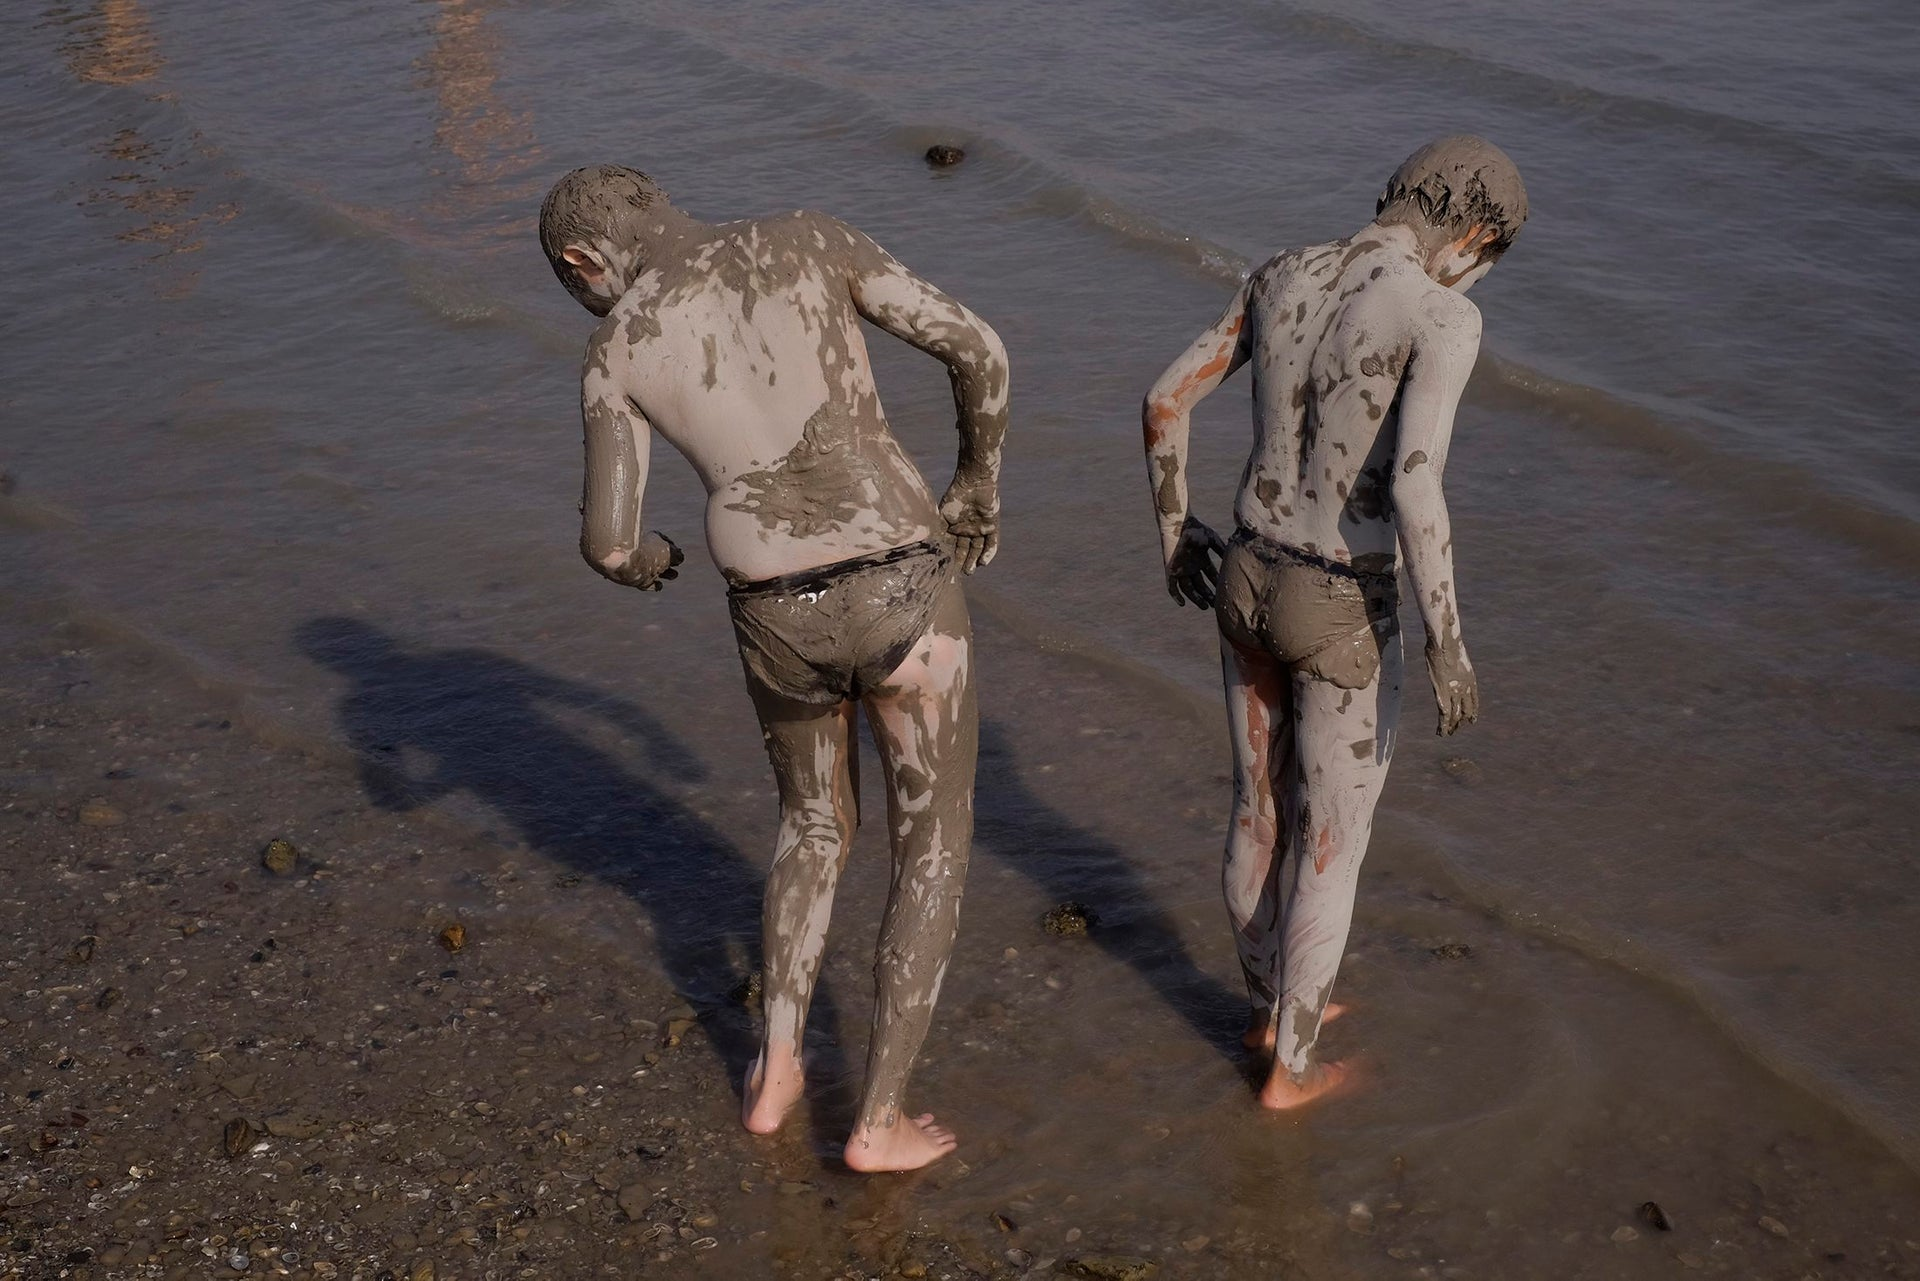 Two Israeli youth covered with mud during the annual Sea of Galilee swim, the oldest and largest popular swimming event, near Tiberias, northern Israel, Saturday, Sept. 16, 2017.